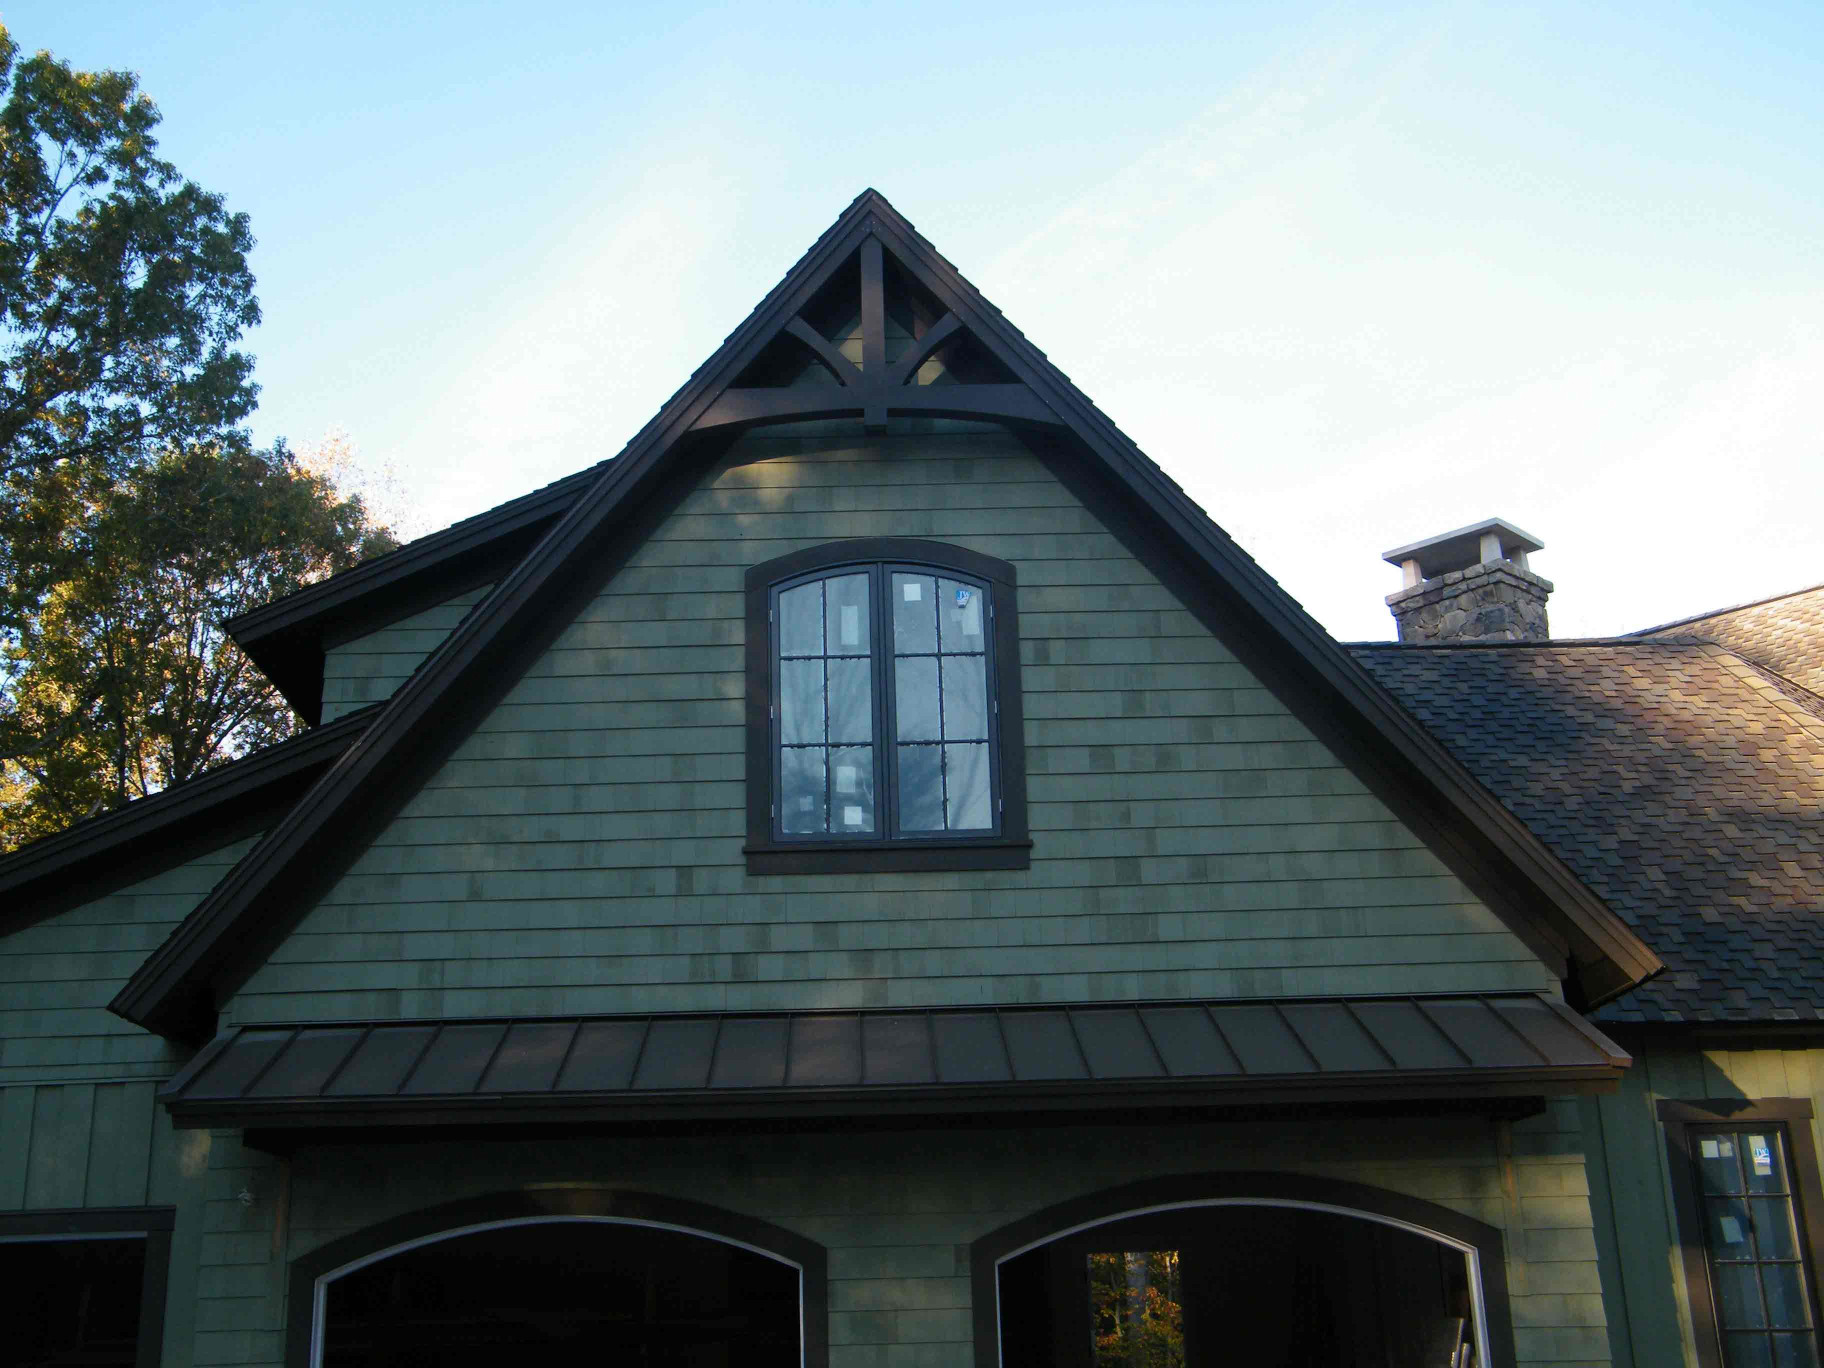 This wood gable bracket is a great way to add curb appeal to a home.